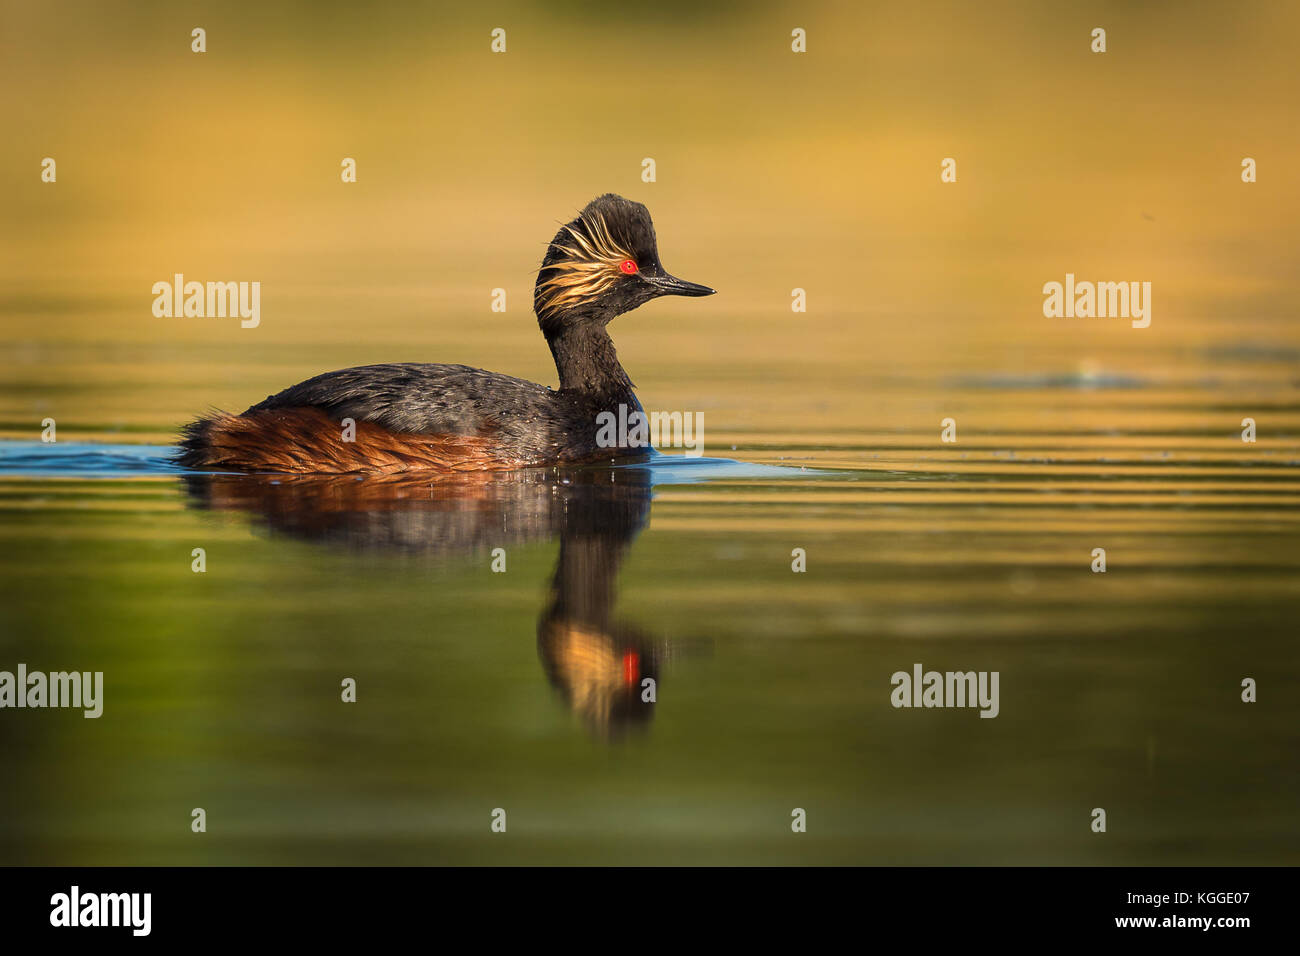 Eared Grebe - Podiceps nigricollis swimming in the water in the morning sunlight - Stock Image